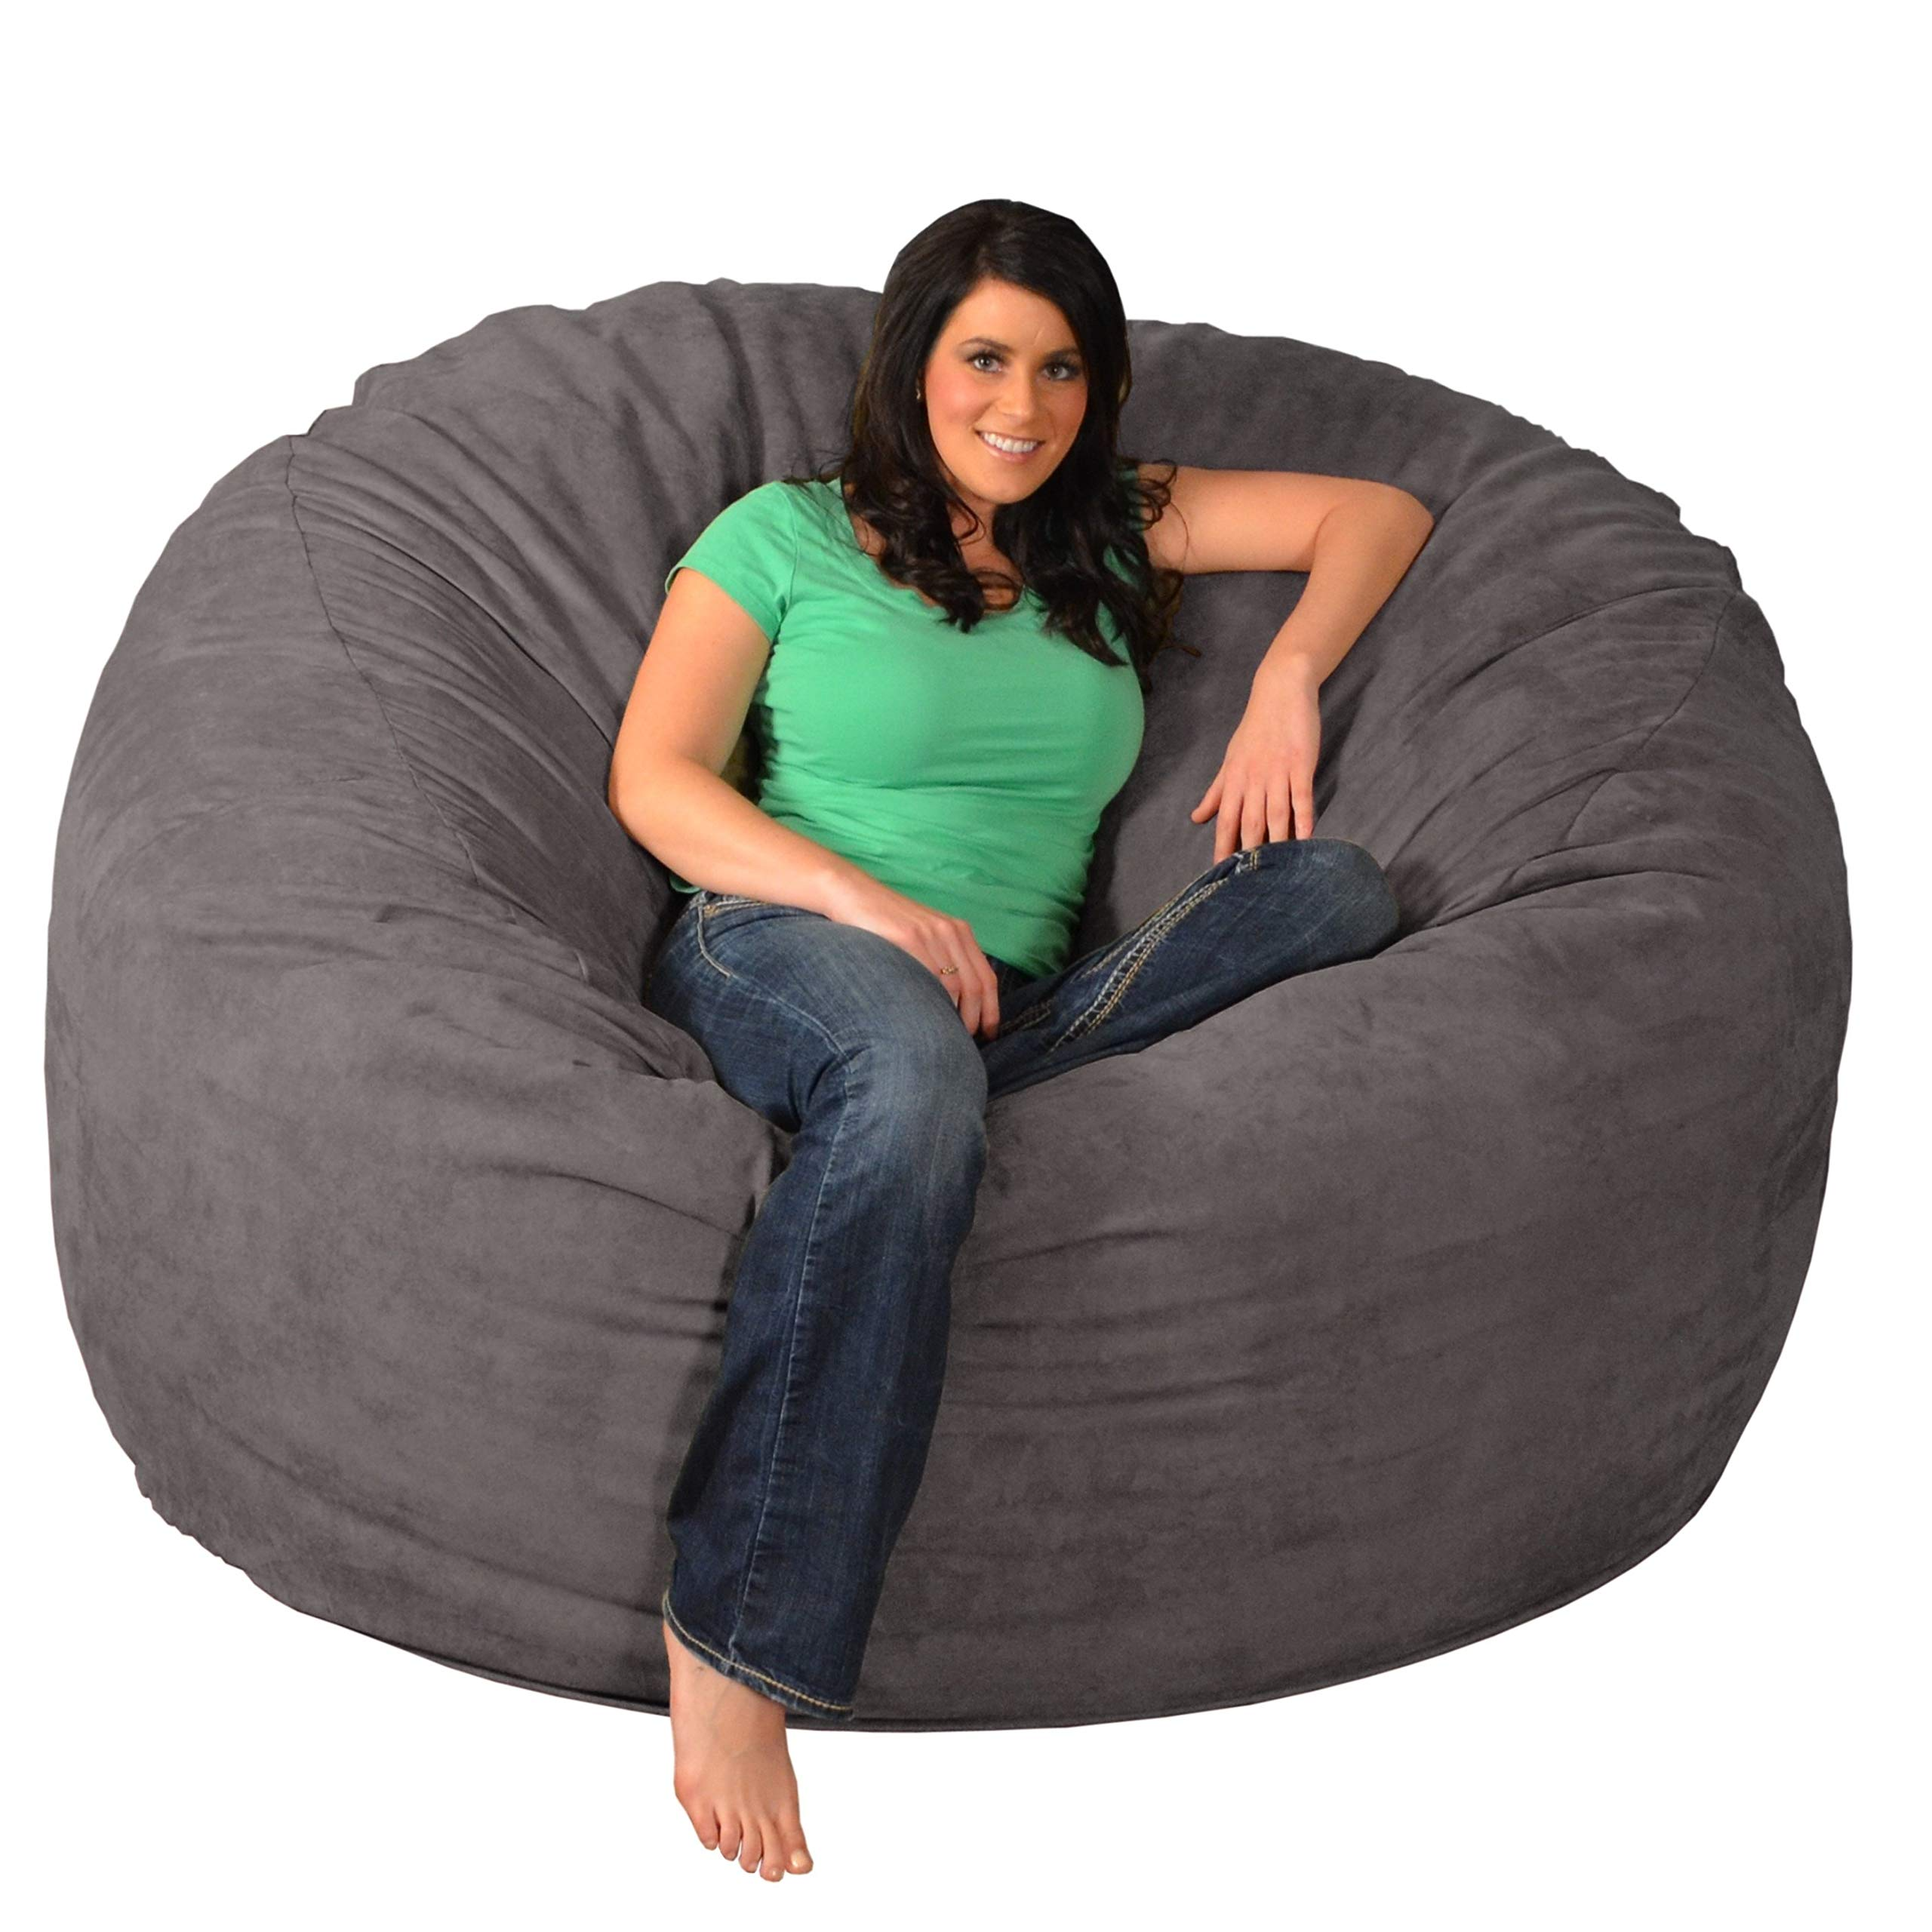 Theater Sacks Giant Memory Foam Bean Bag 6-Foot Chair Charcoal